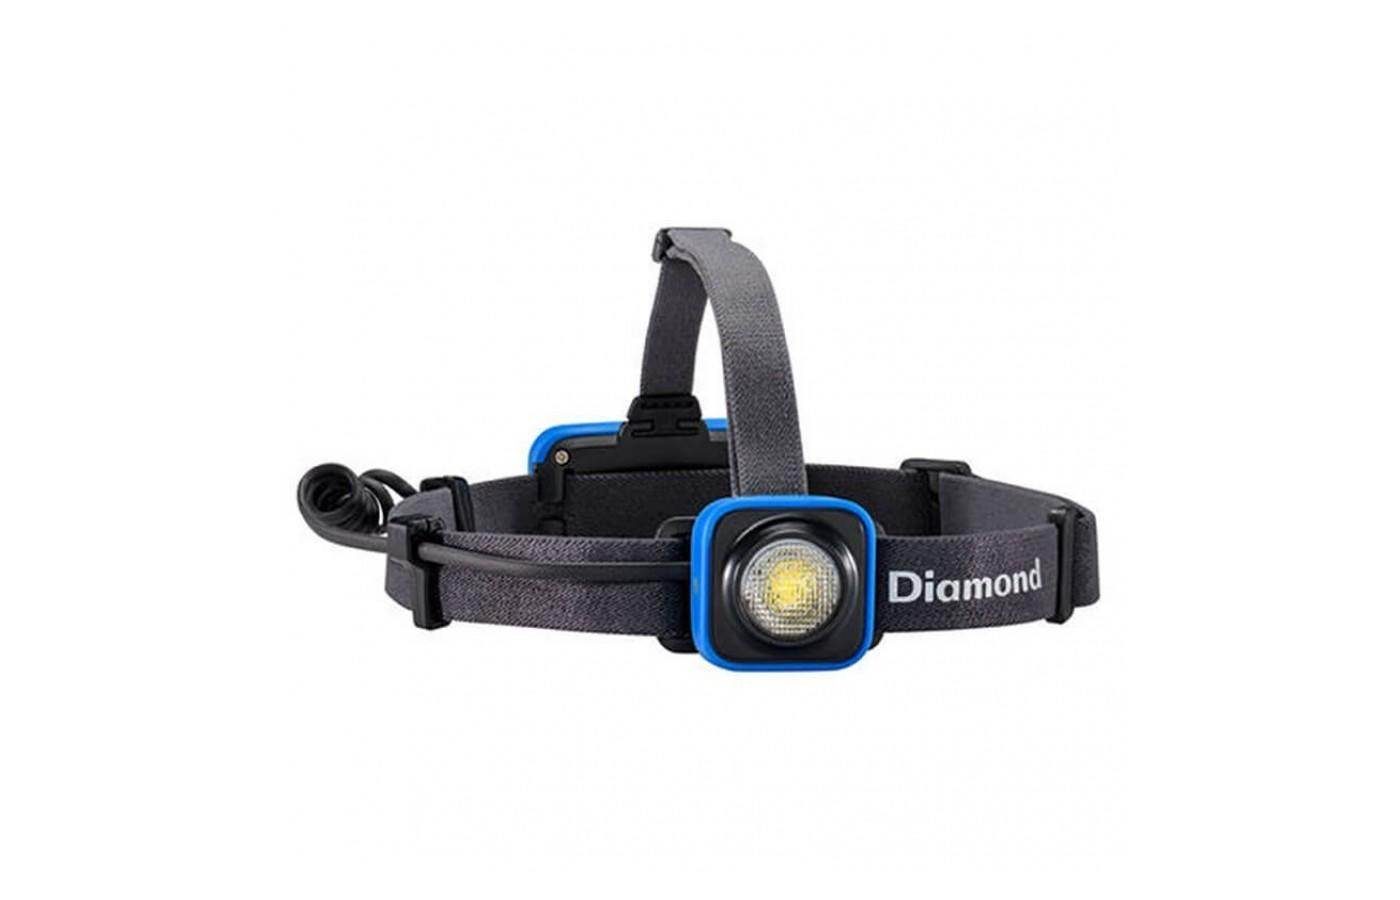 The Black Diamond Sprinter is a simple easy headlamp with an urban running specific scope